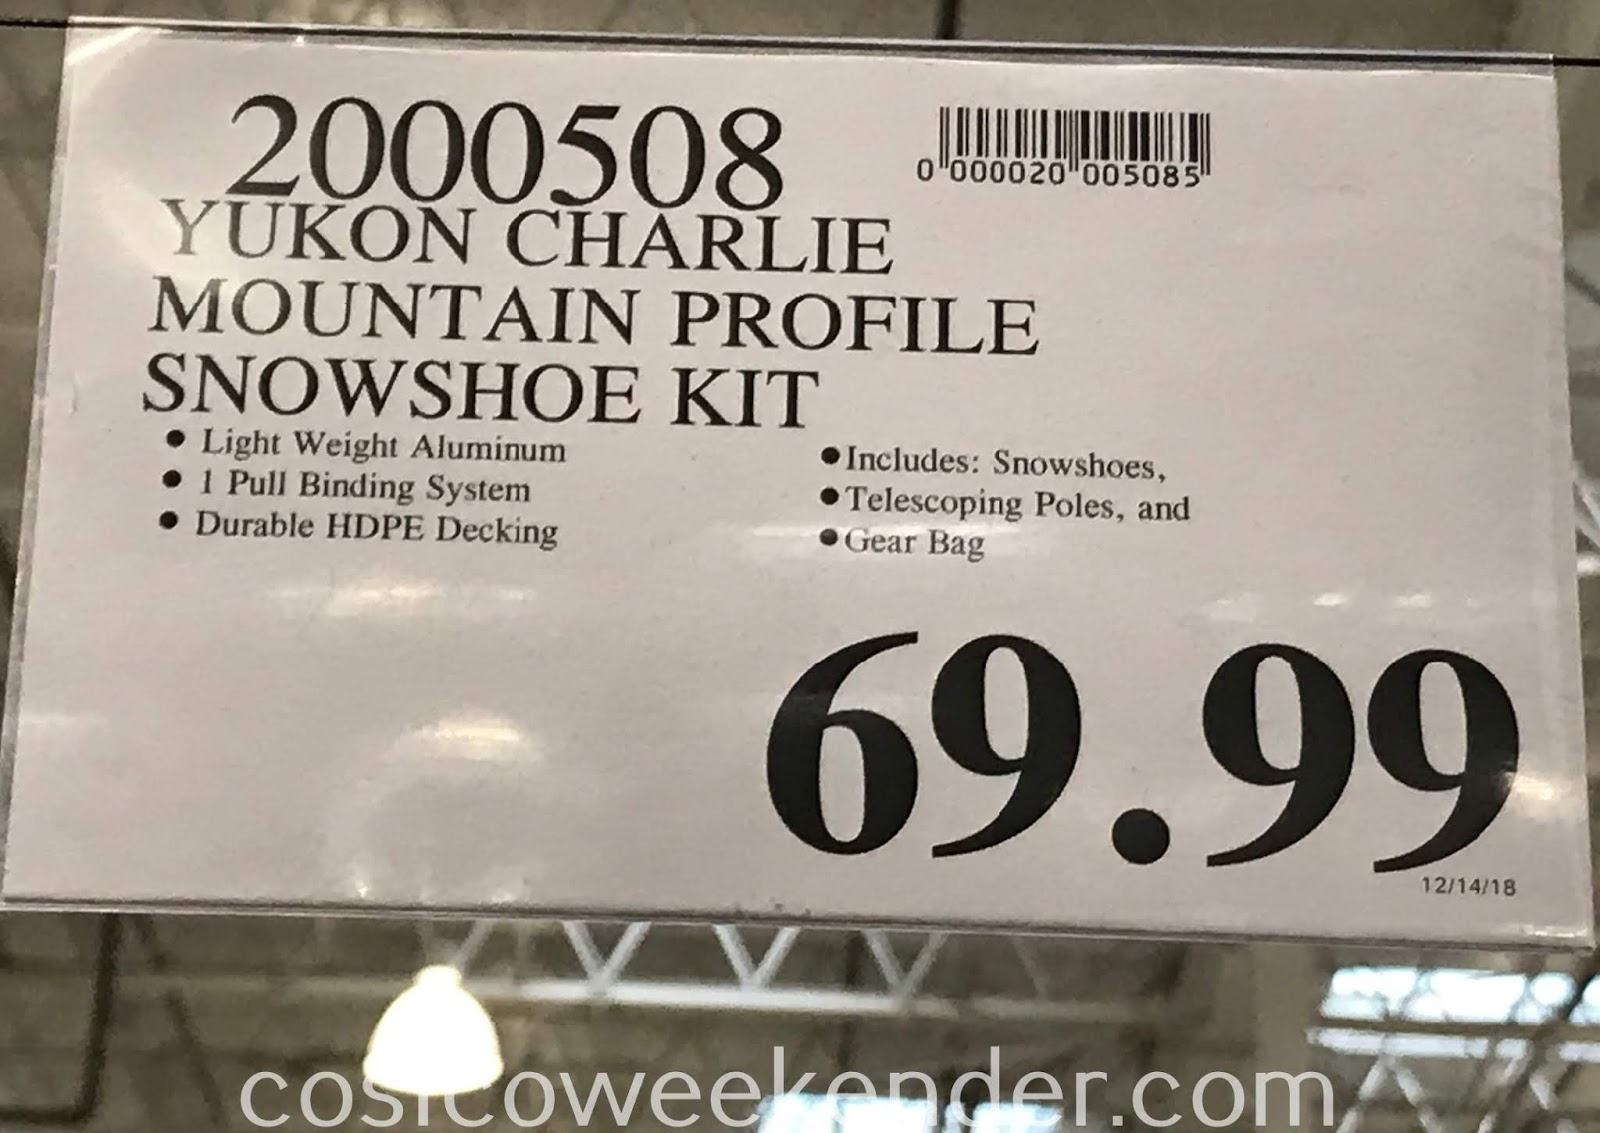 Deal for the Yukon Charlie Mountain Profile Snowshoe Kit at Costco